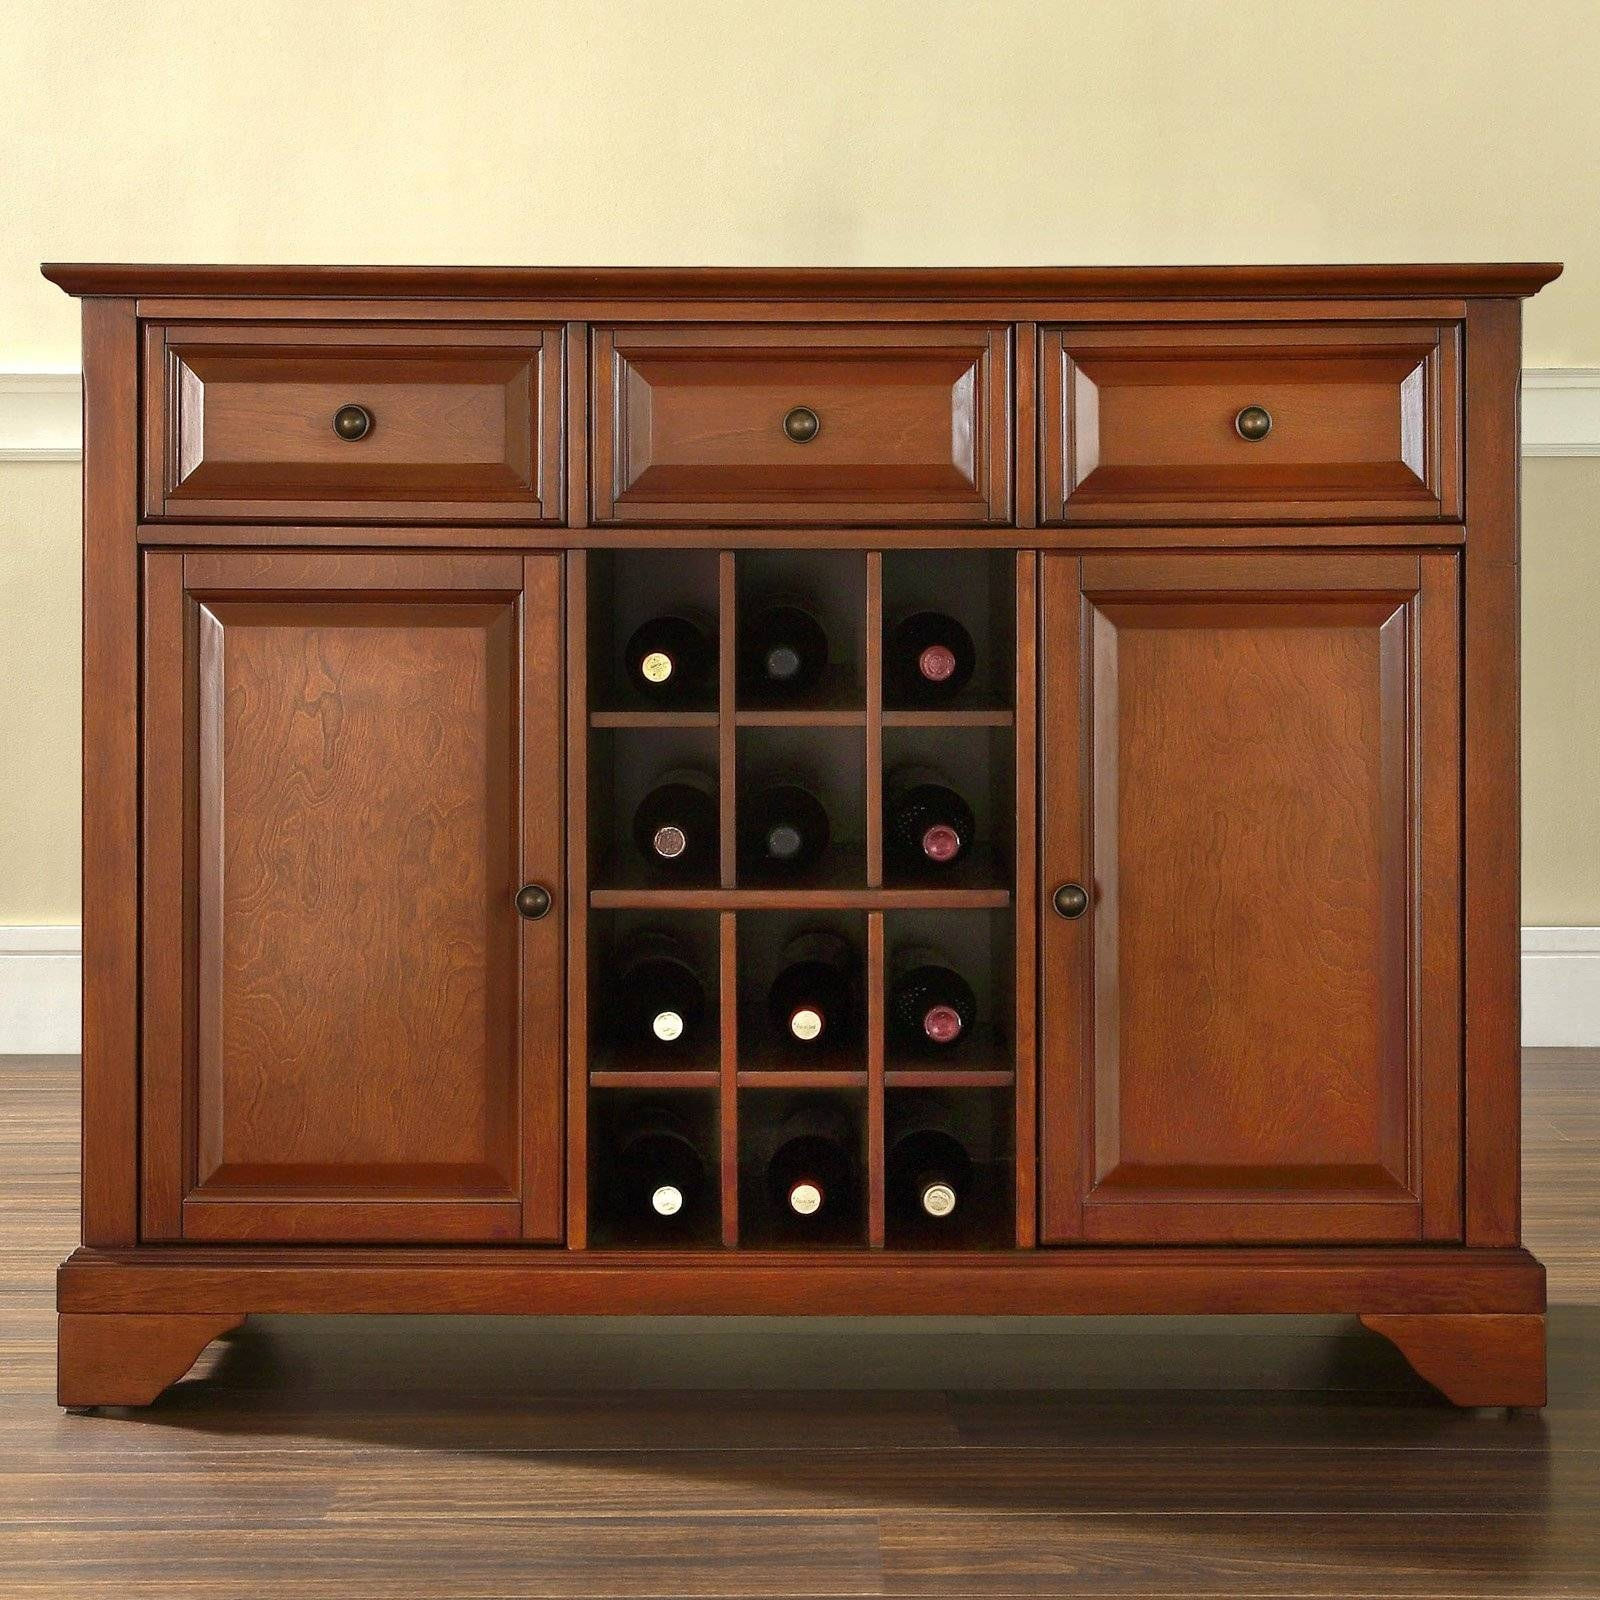 Crosley Furniture Lafayette Buffet Server And Sideboard Cabinet throughout Buffet Servers and Sideboards (Image 4 of 15)